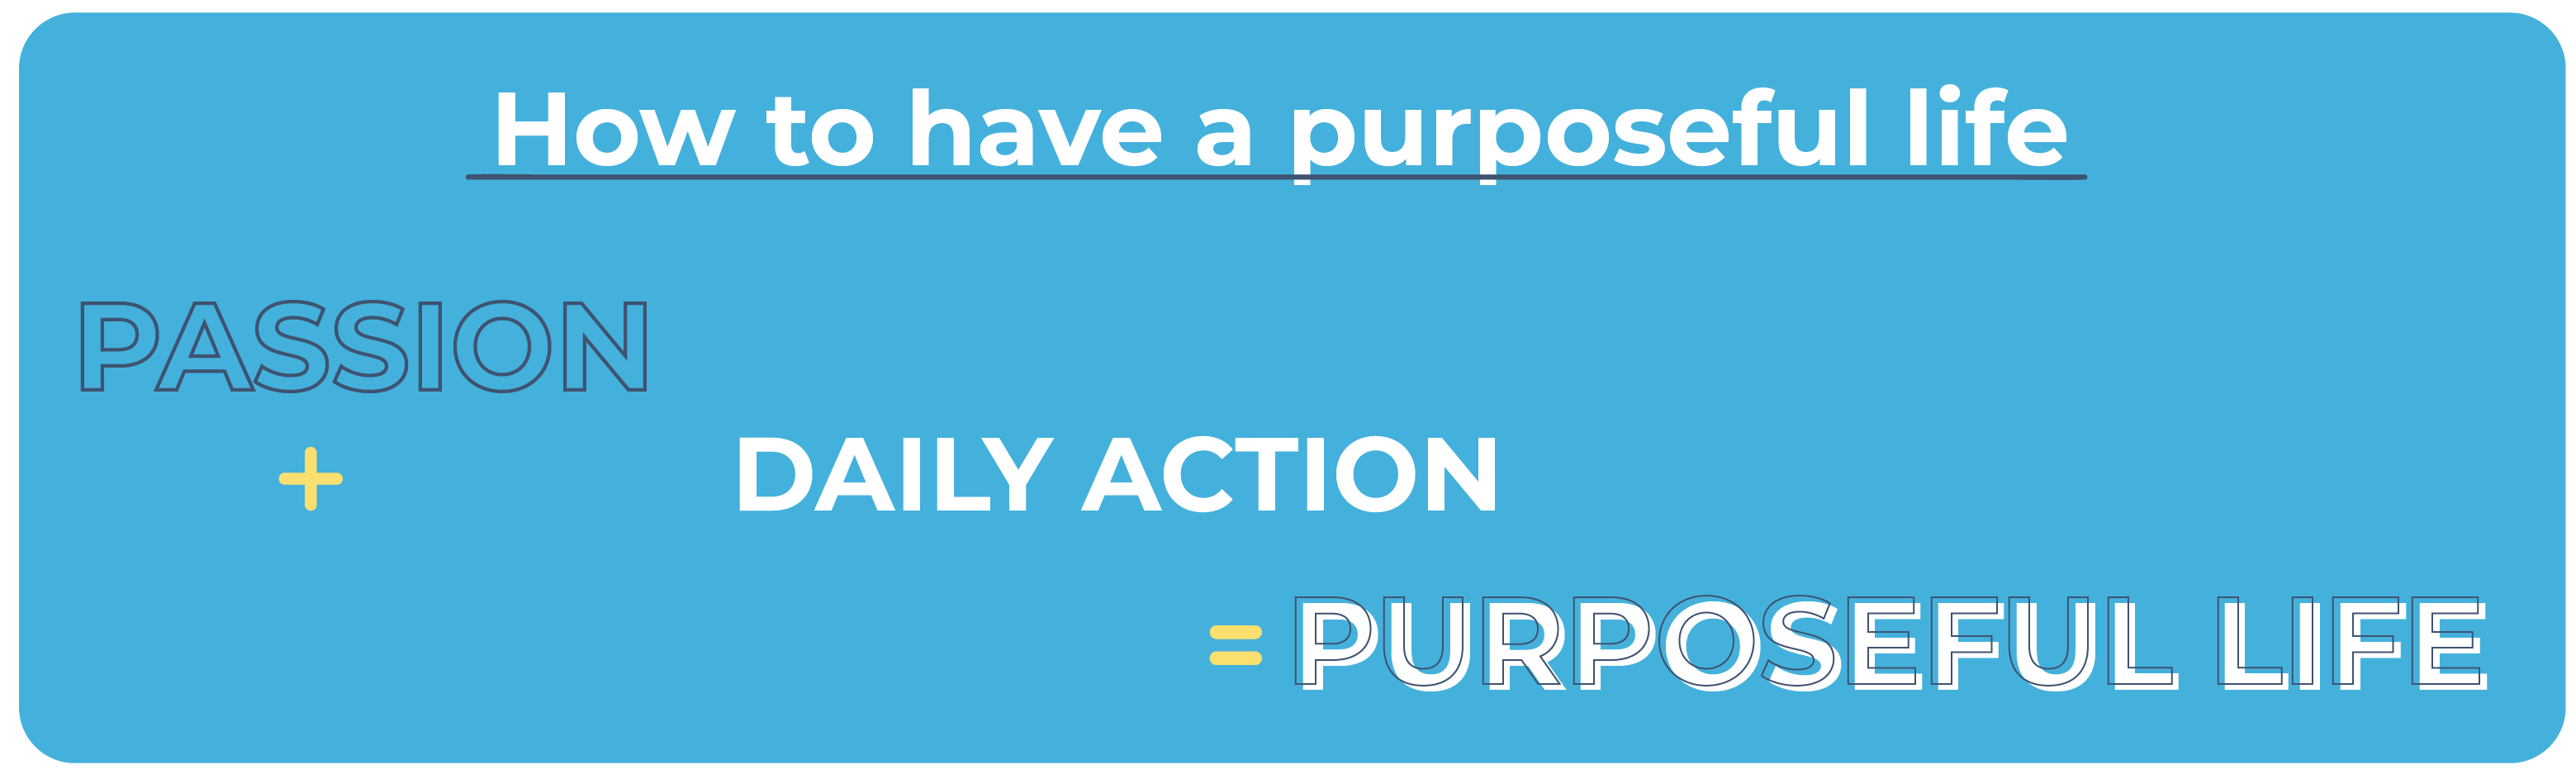 The Purposeful Life Formula: Passion + Daily Action = A Purposeful Life